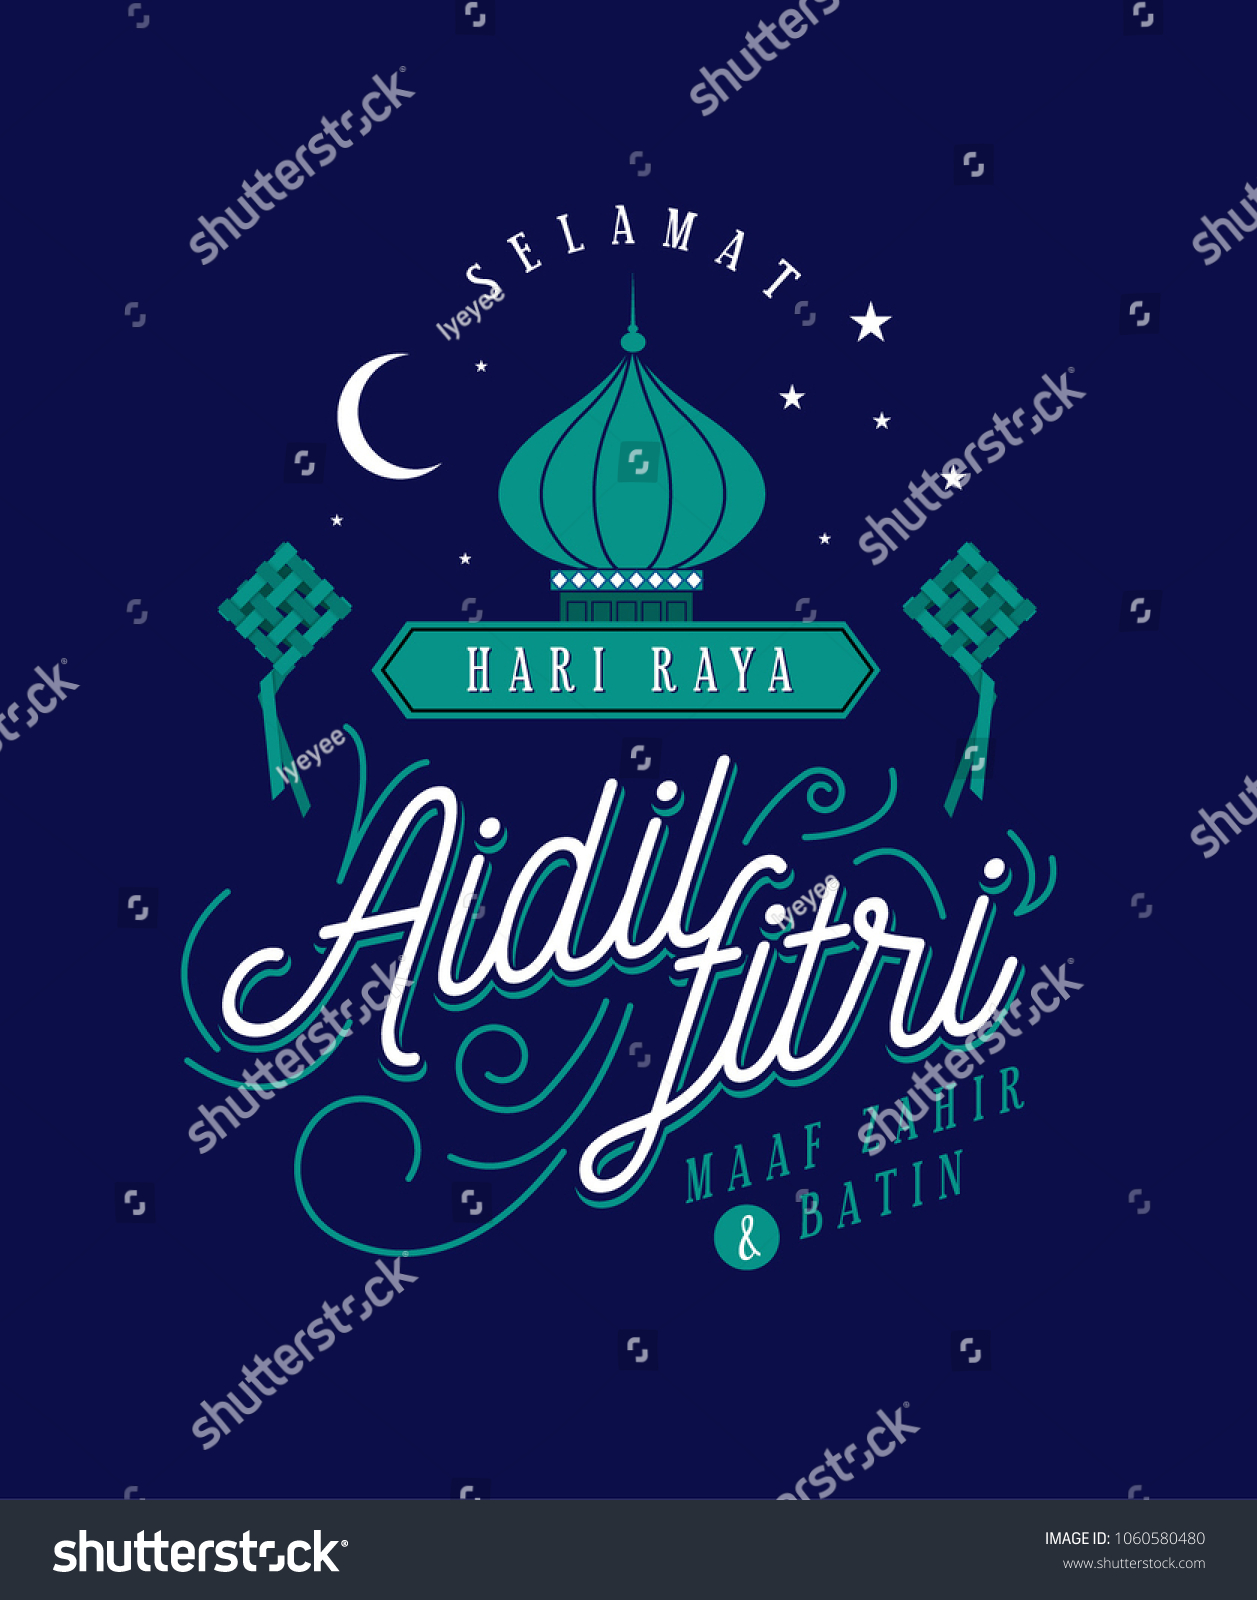 Hipster Hari Raya Greetings Template Vectorillustration Stock Vector